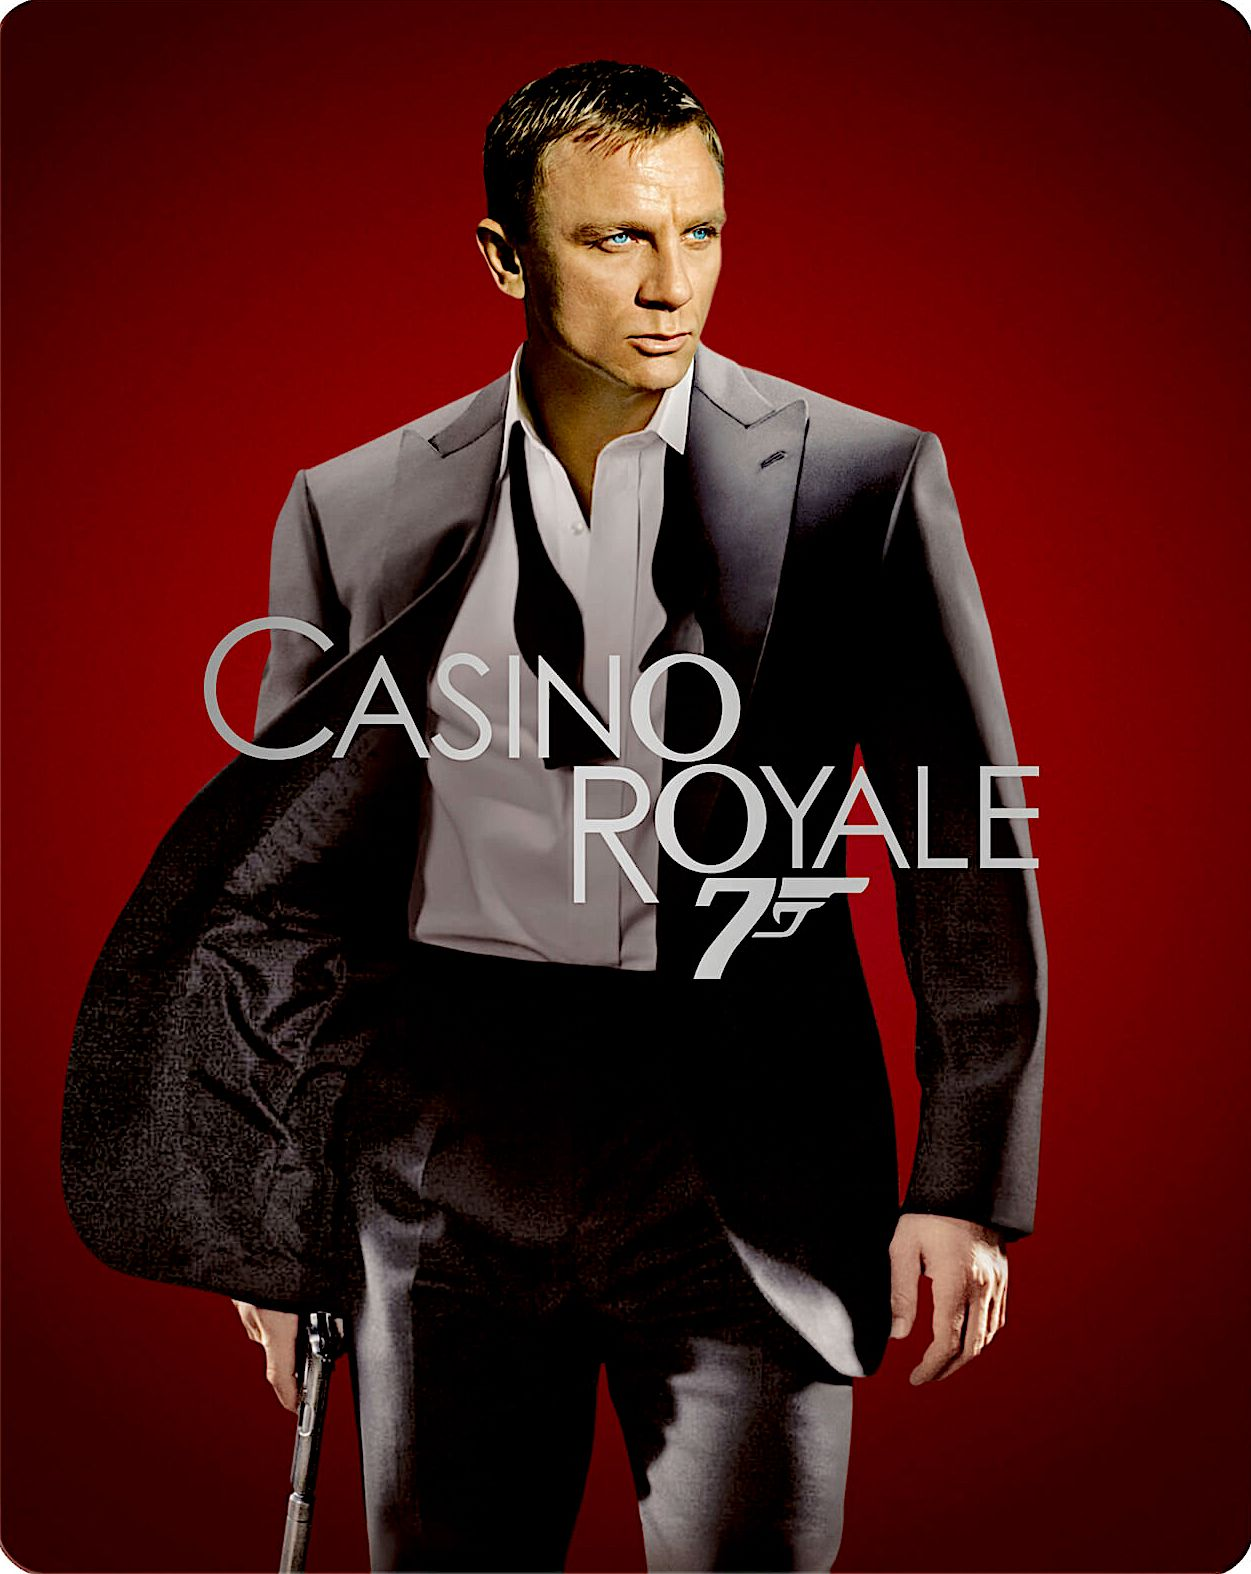 Casino Royale 4k Blu Ray Steelbook Mgm In 2020 Casino Royale